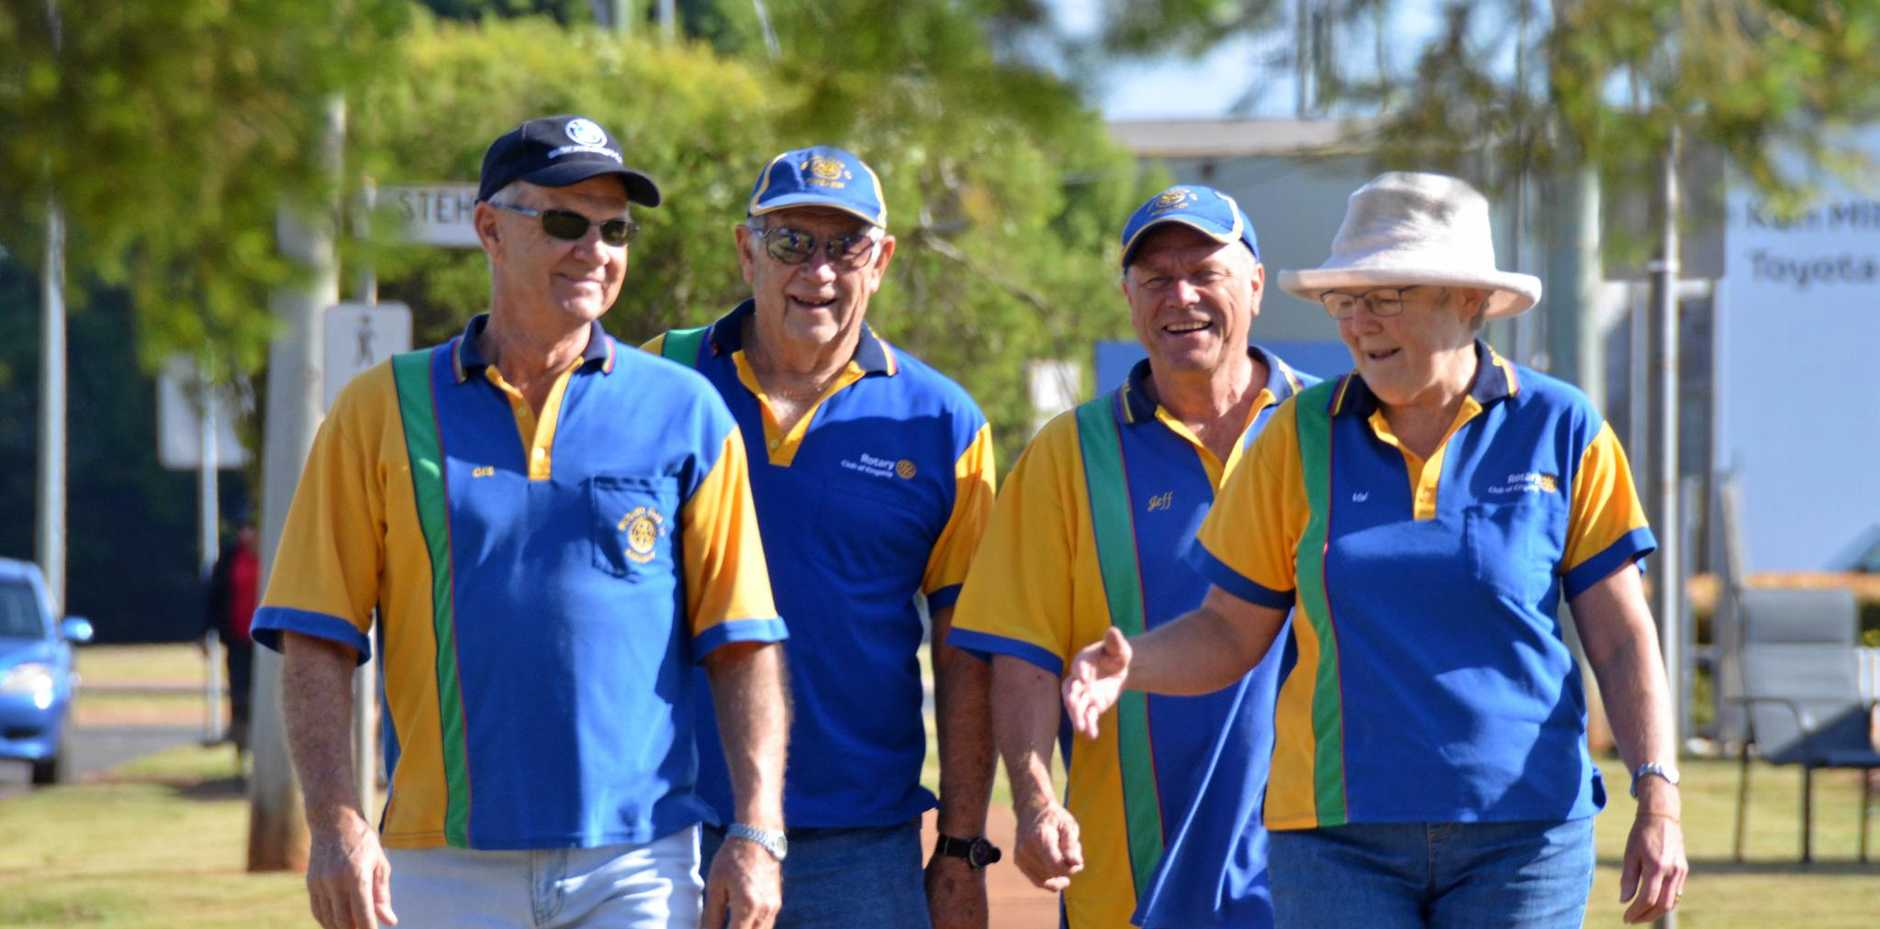 IN THE FRESH AIR: Kingaroy Rotary members Des Cook, Lex Petersen, Jeff Castledine and Val Hooper on the Walk for Mental Health.